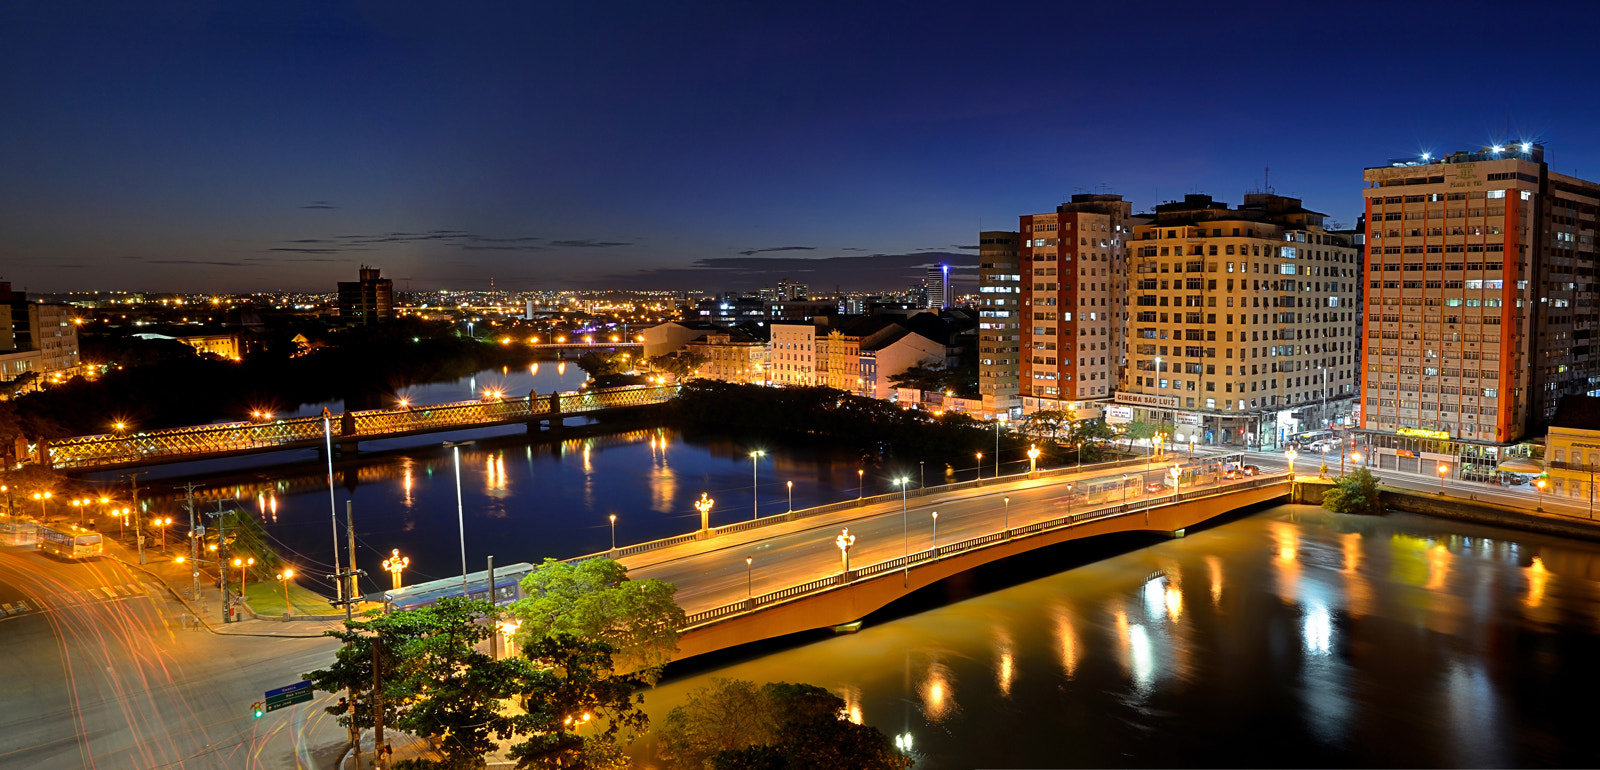 Photograph Recife by Lamartine Teixeira on 500px